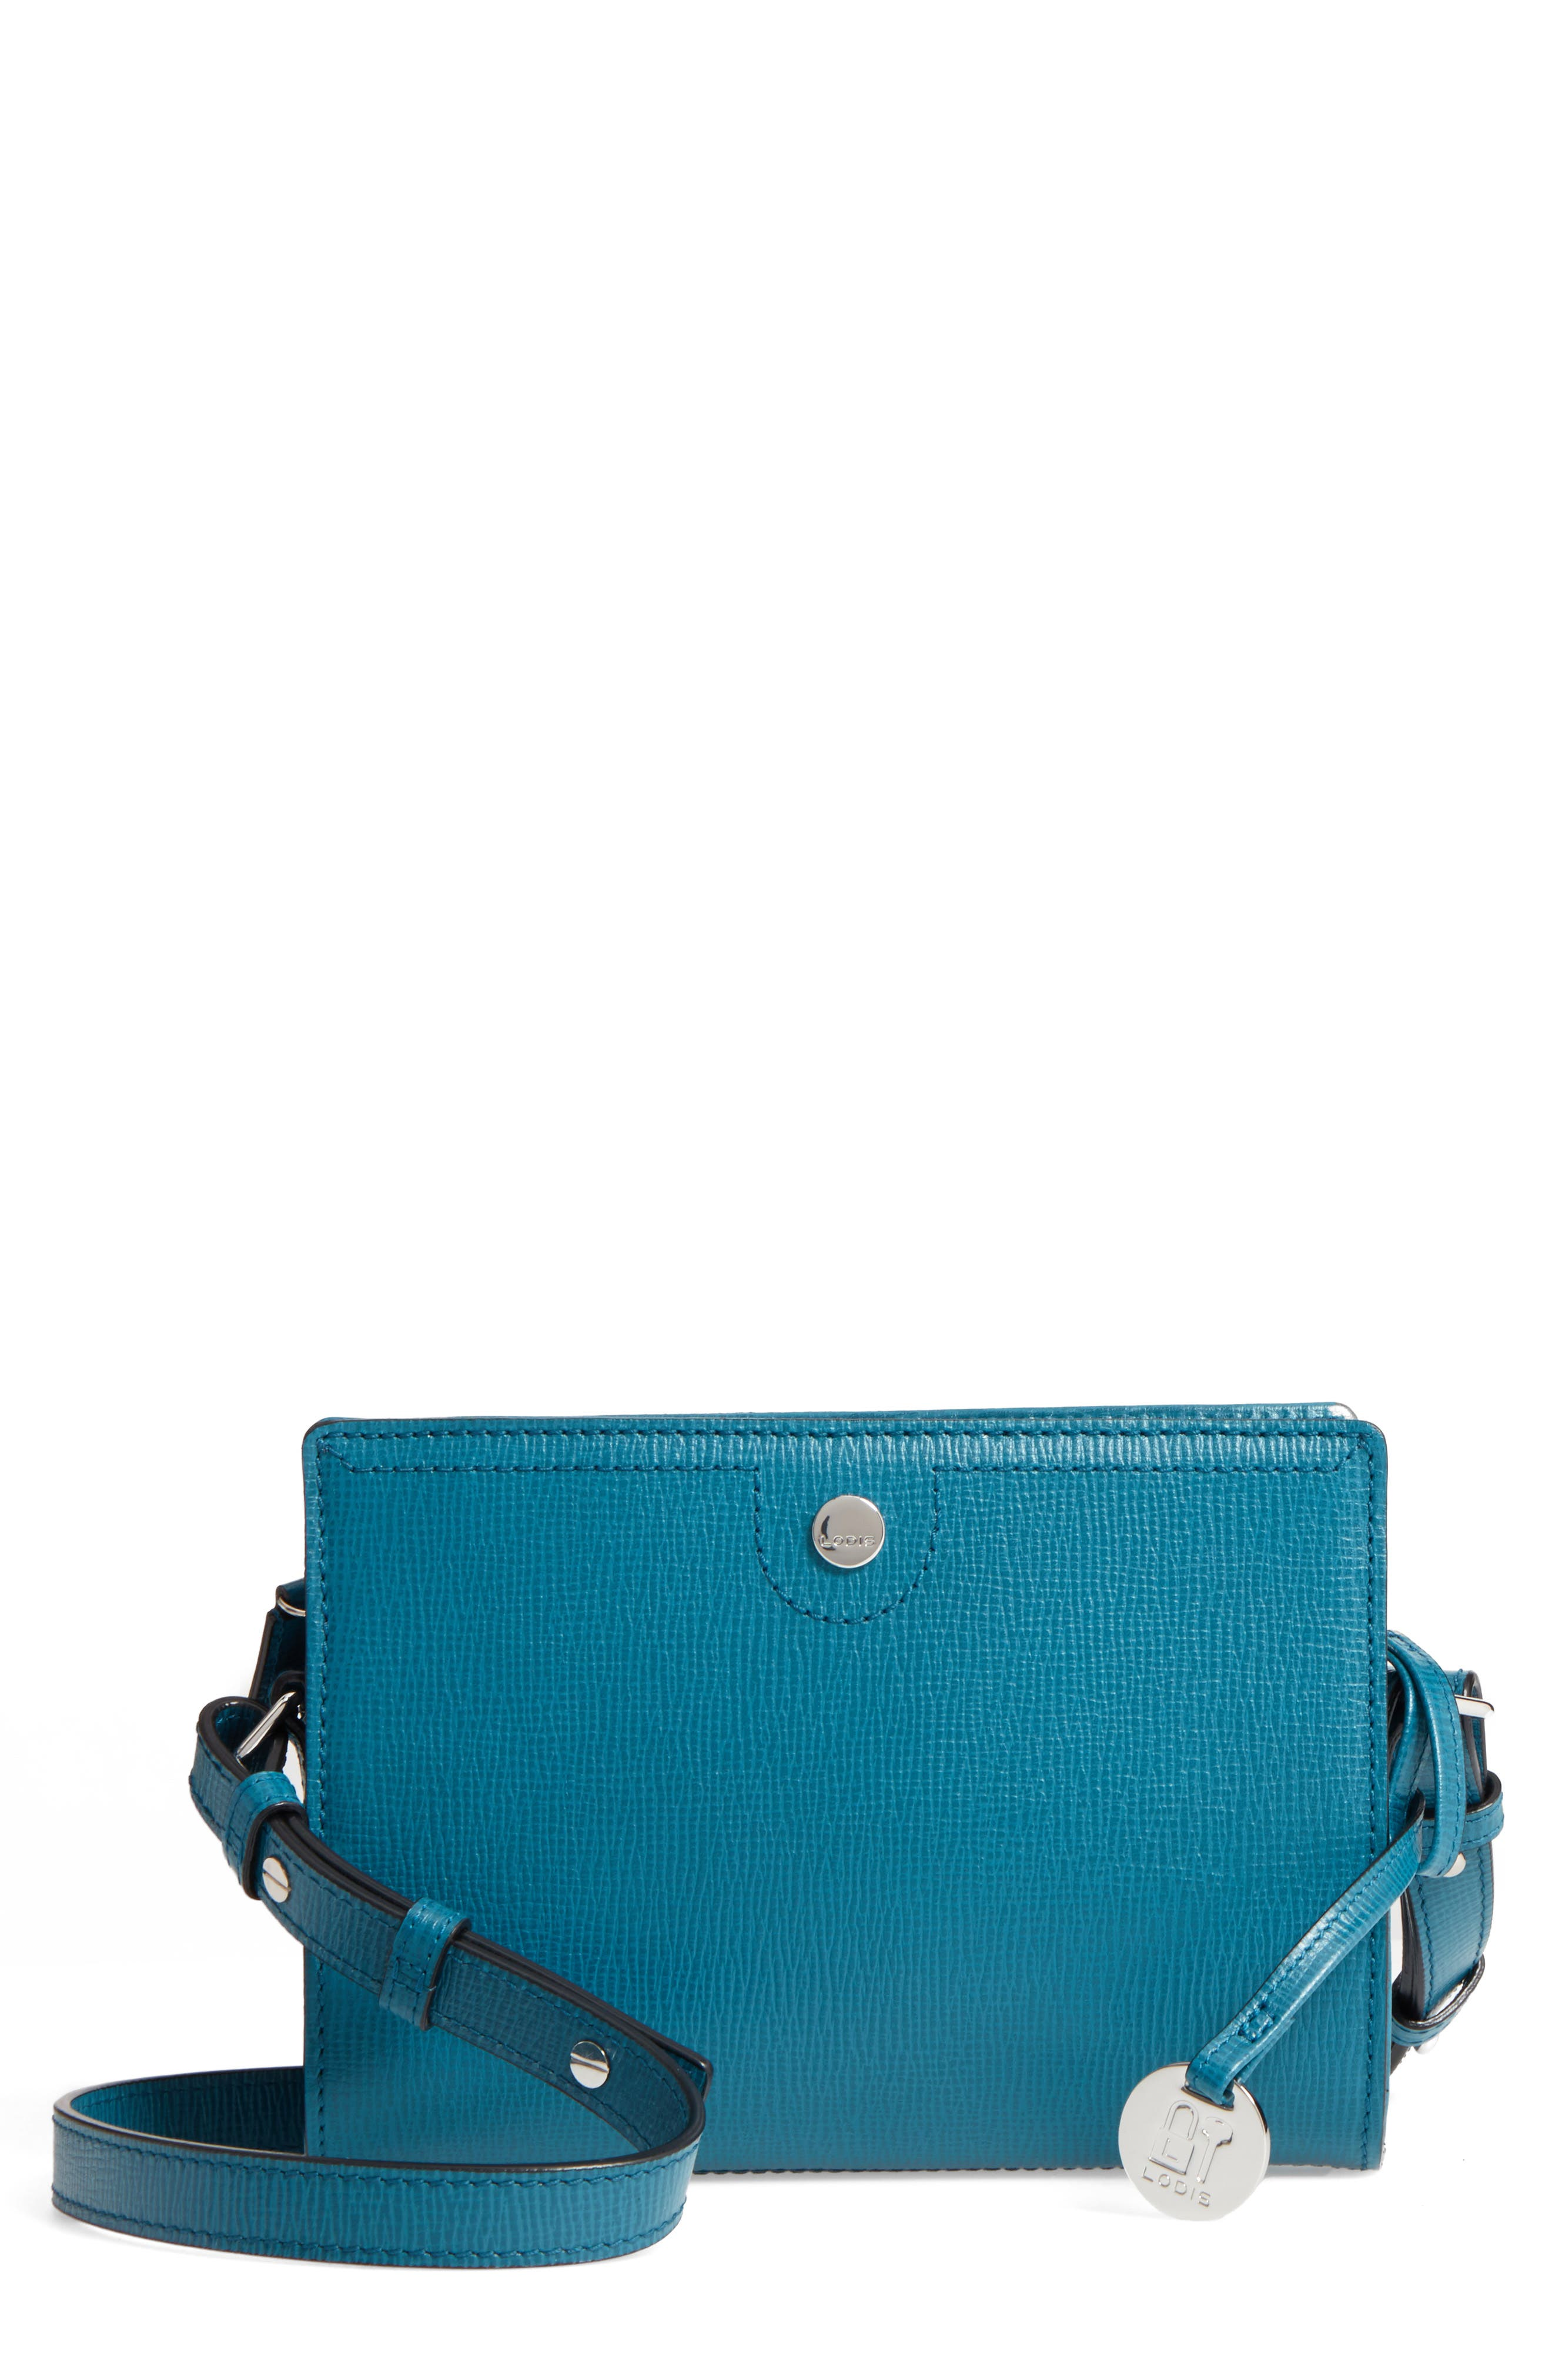 Alternate Image 1 Selected - LODIS Los Angeles Business Chic Pheobe RFID-Protected Leather Crossbody Bag